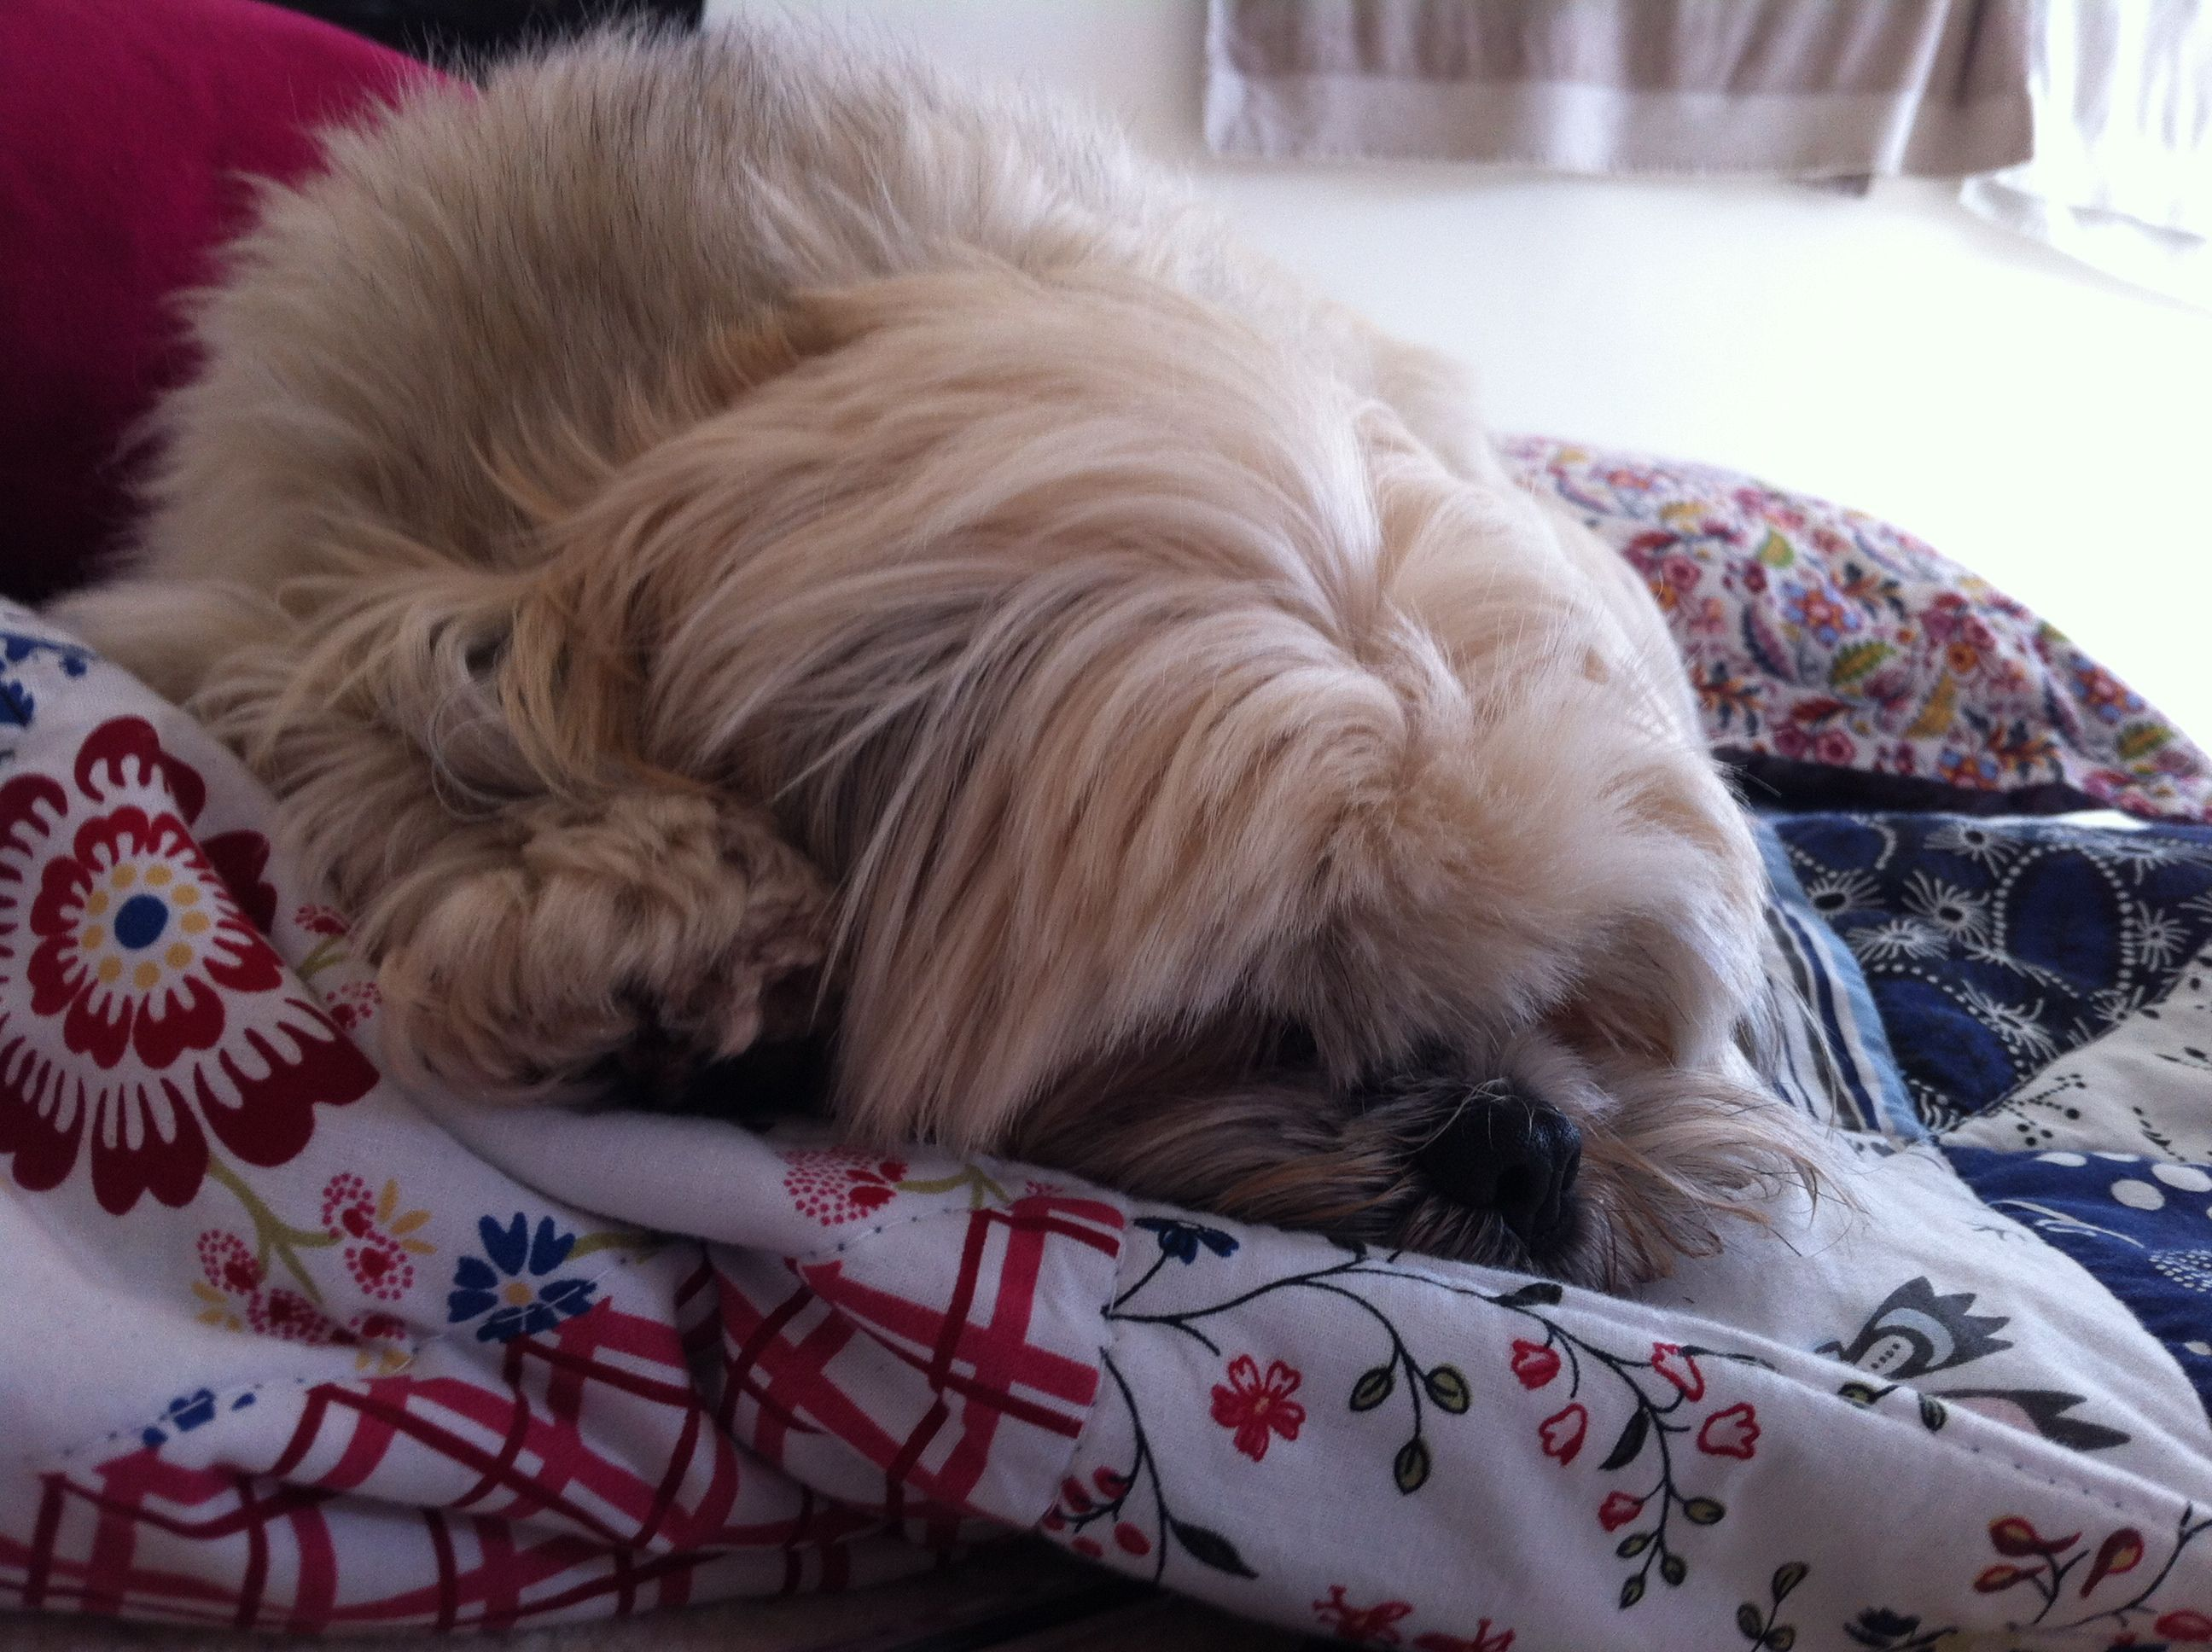 Lhasa apso lazy afternoon